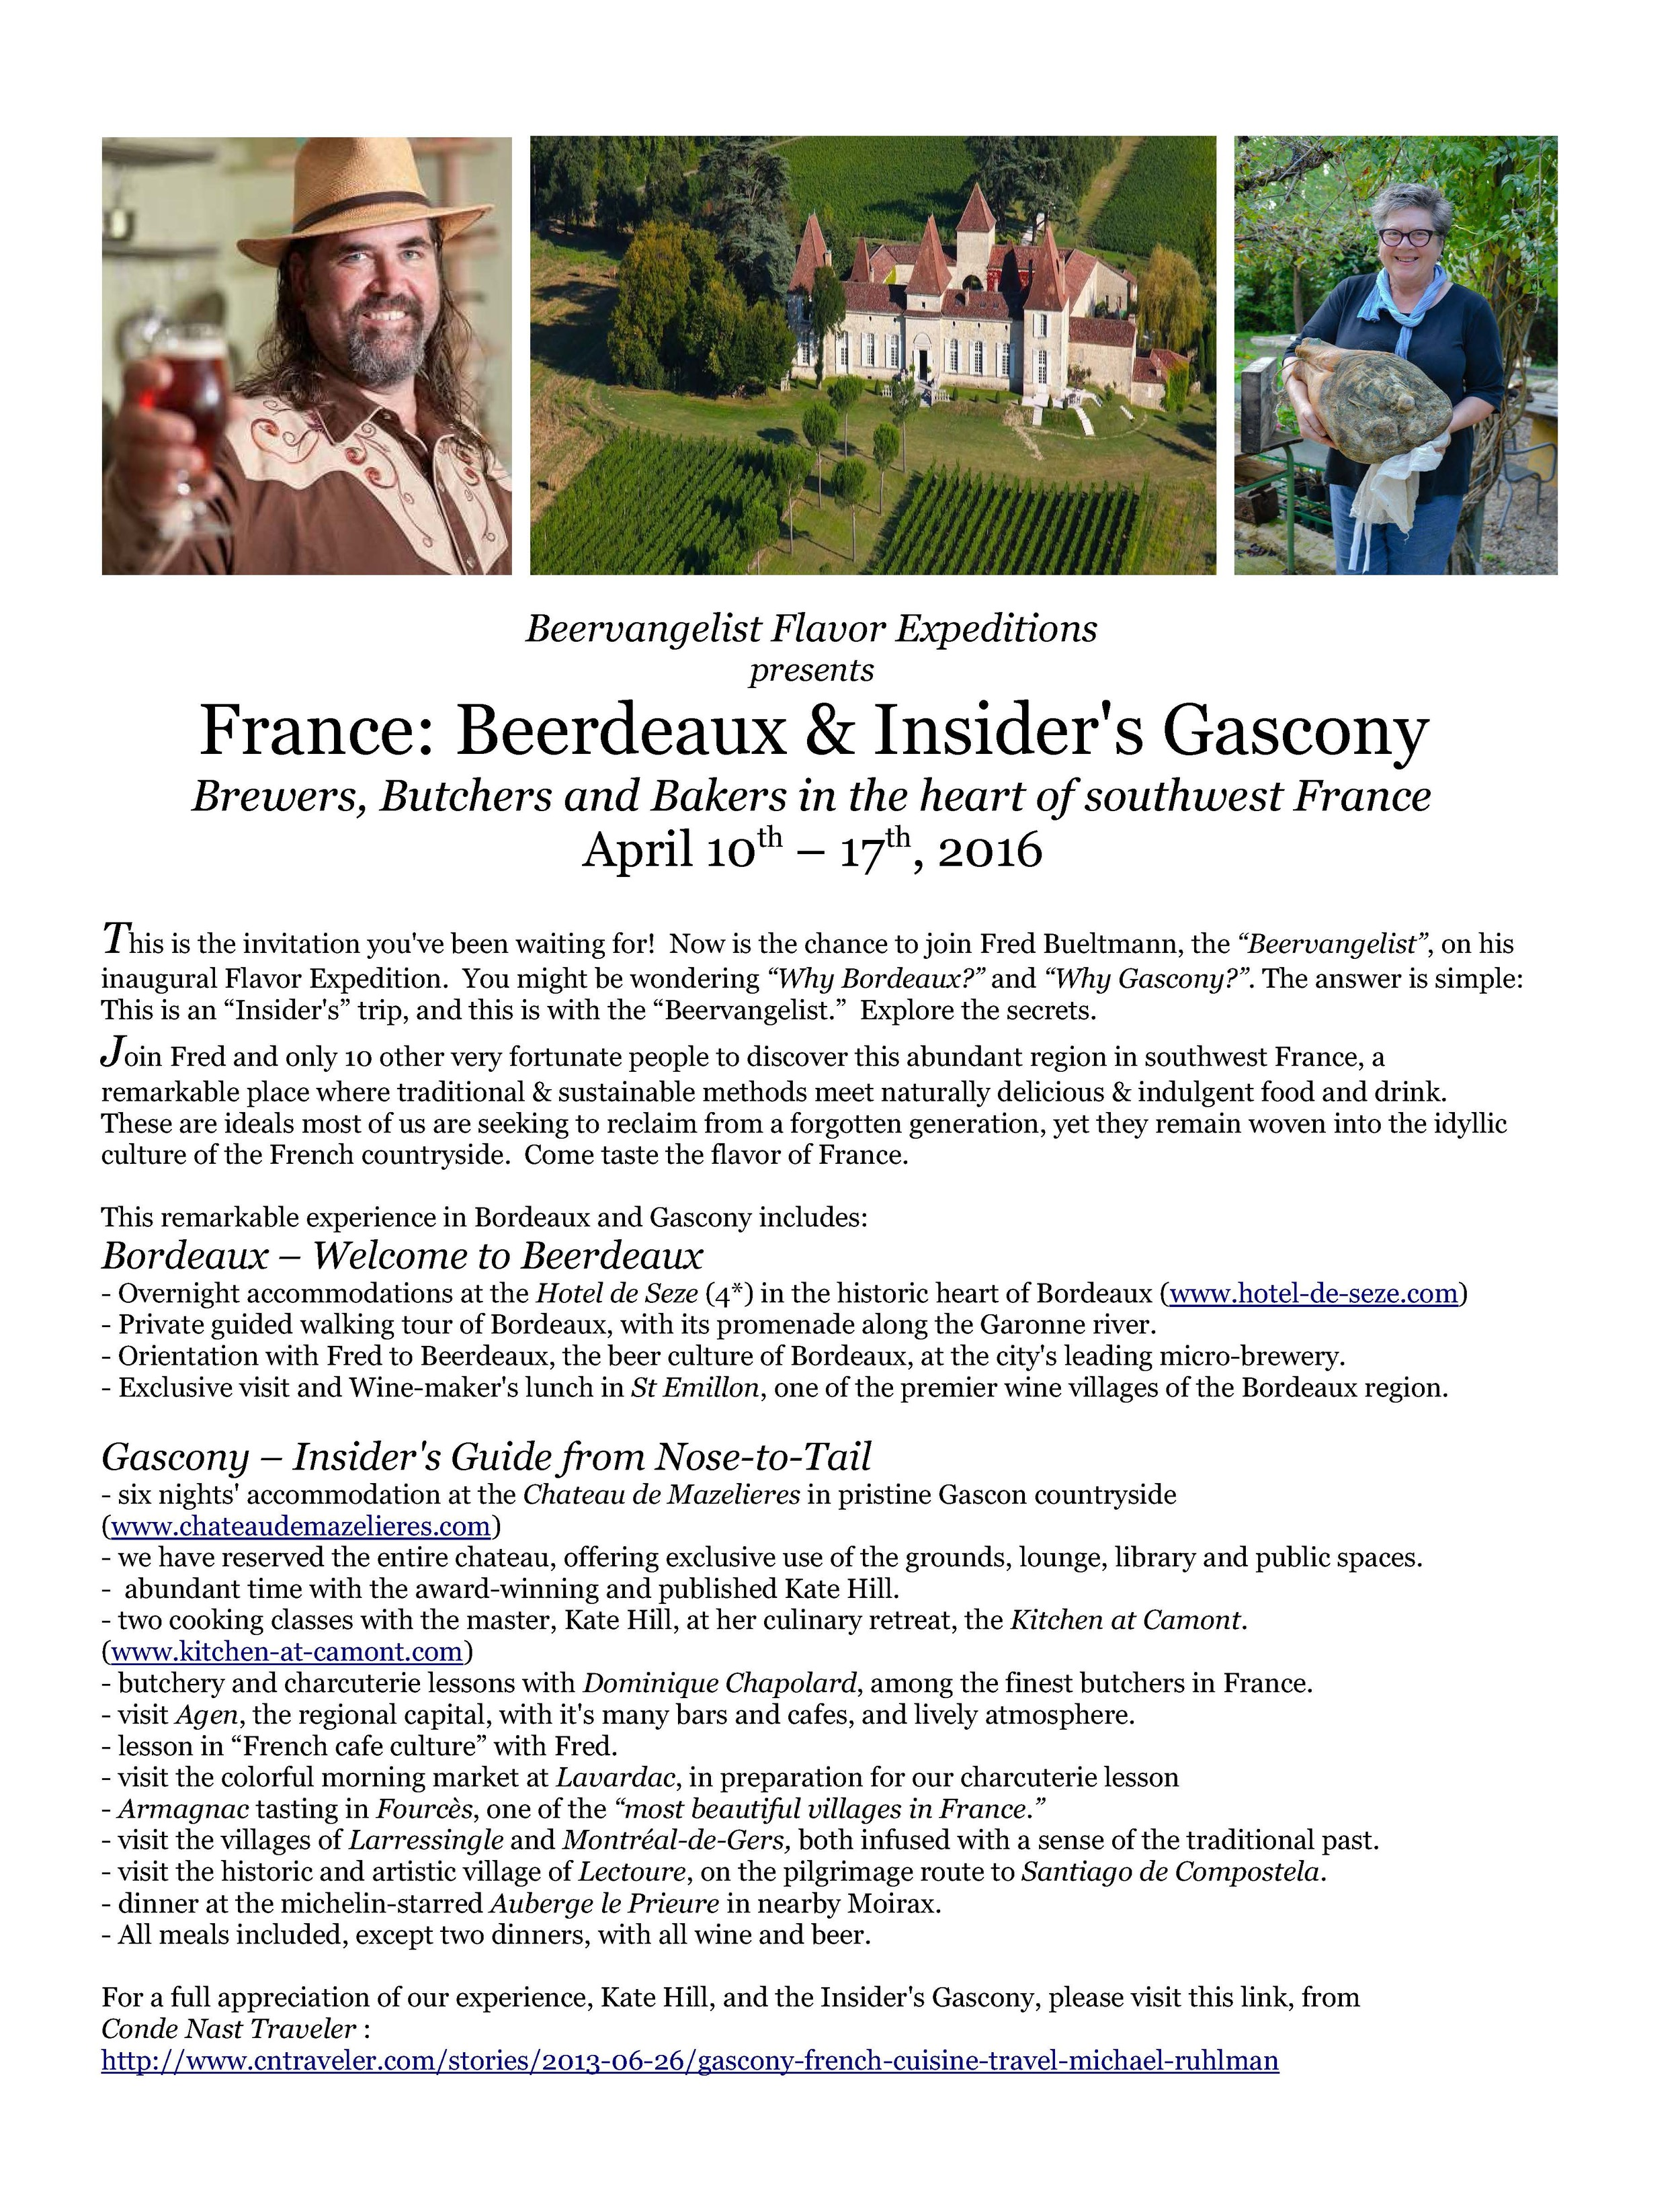 Beerdeaux and Insider's Gascony Final_Page_2.jpg